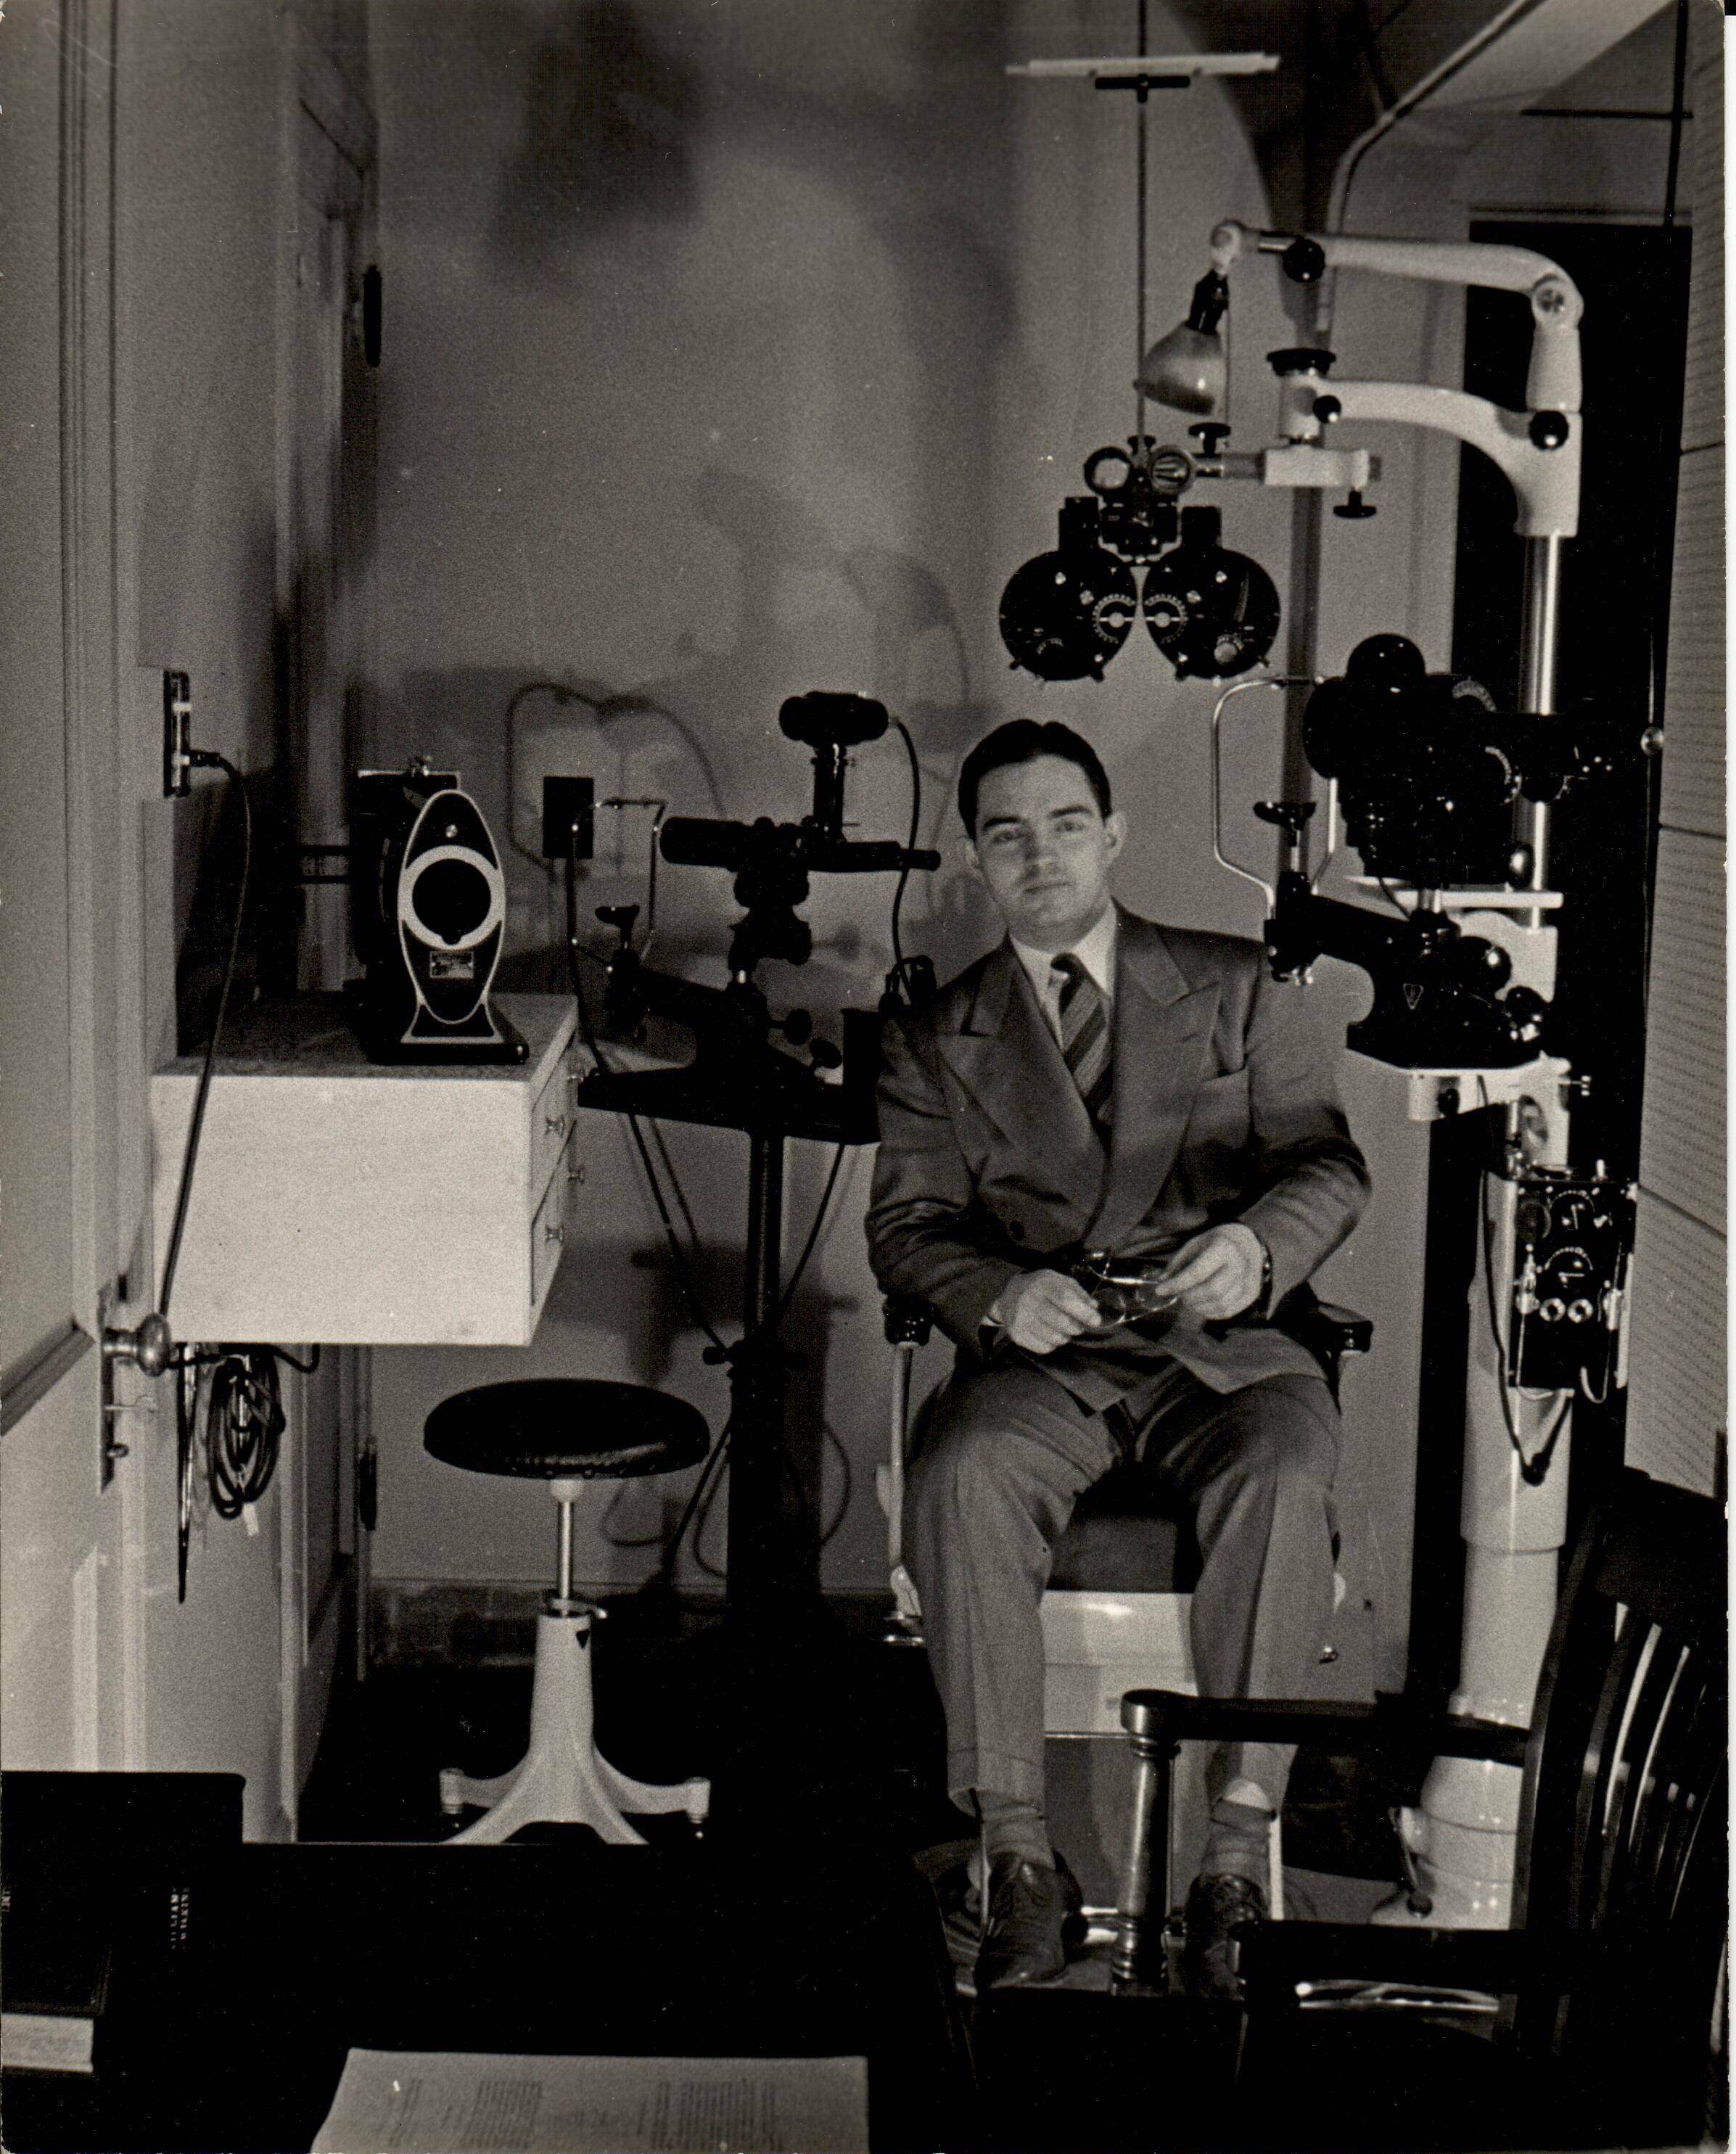 Dr. Robert A. Hass in his exam room, 1947